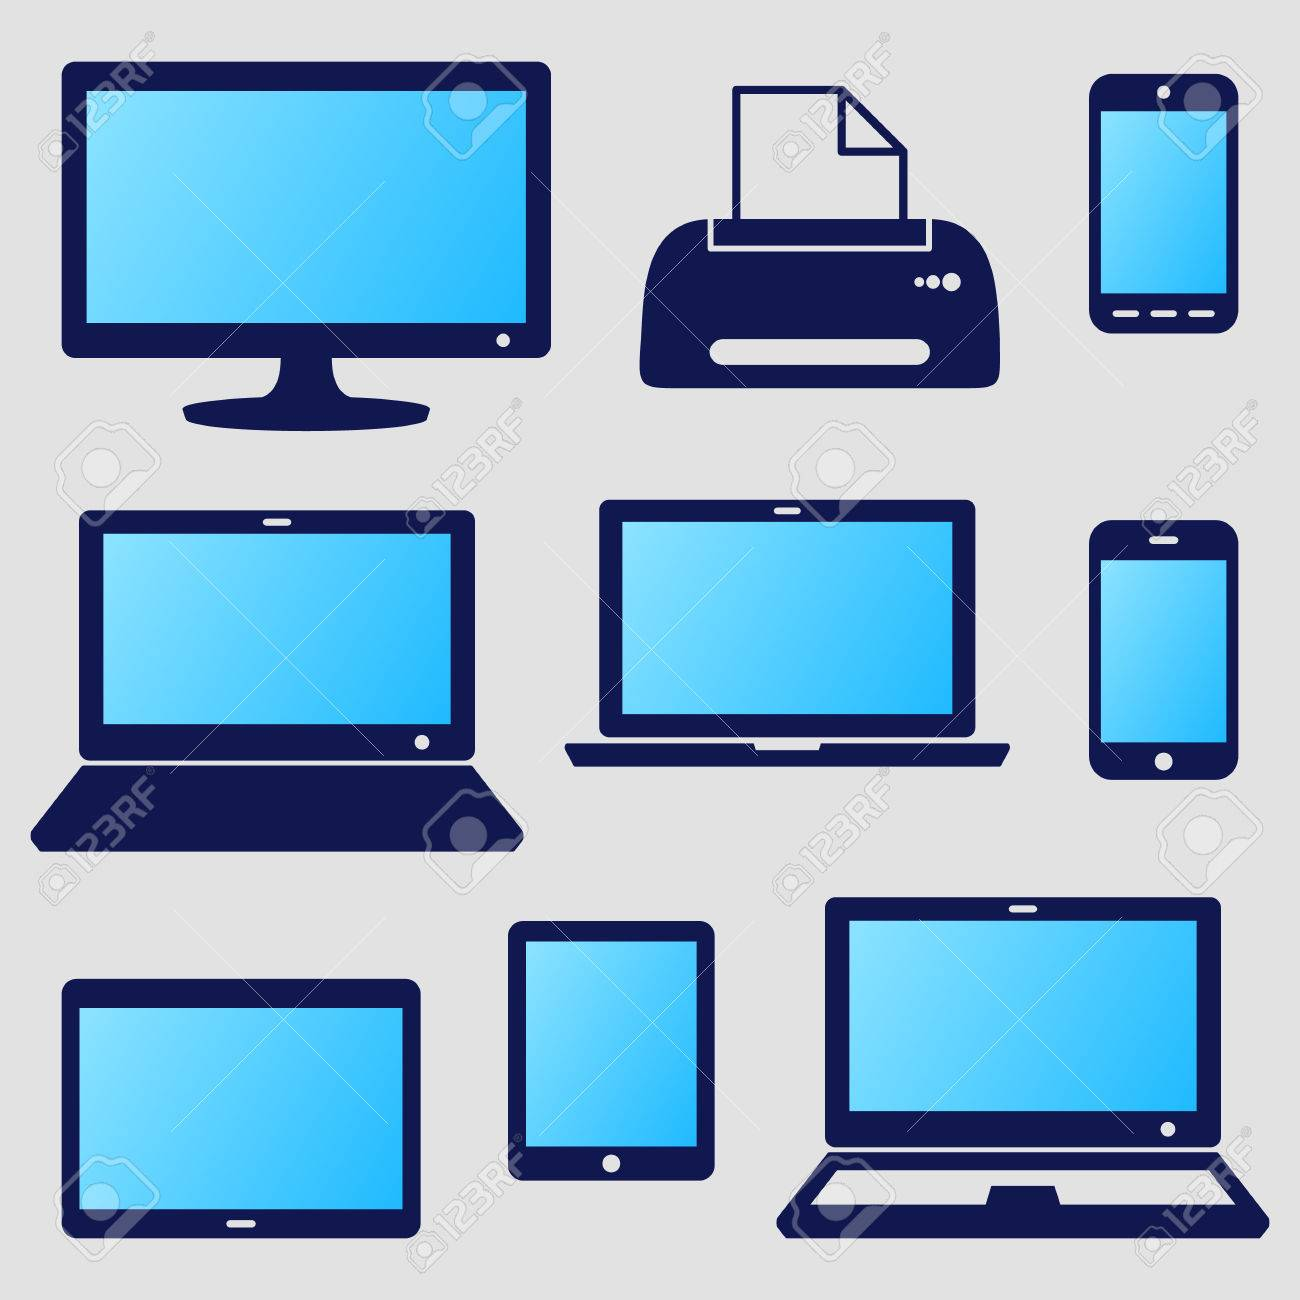 Vector Modern Digital Device Icons With Blue Screen Royalty Free ...